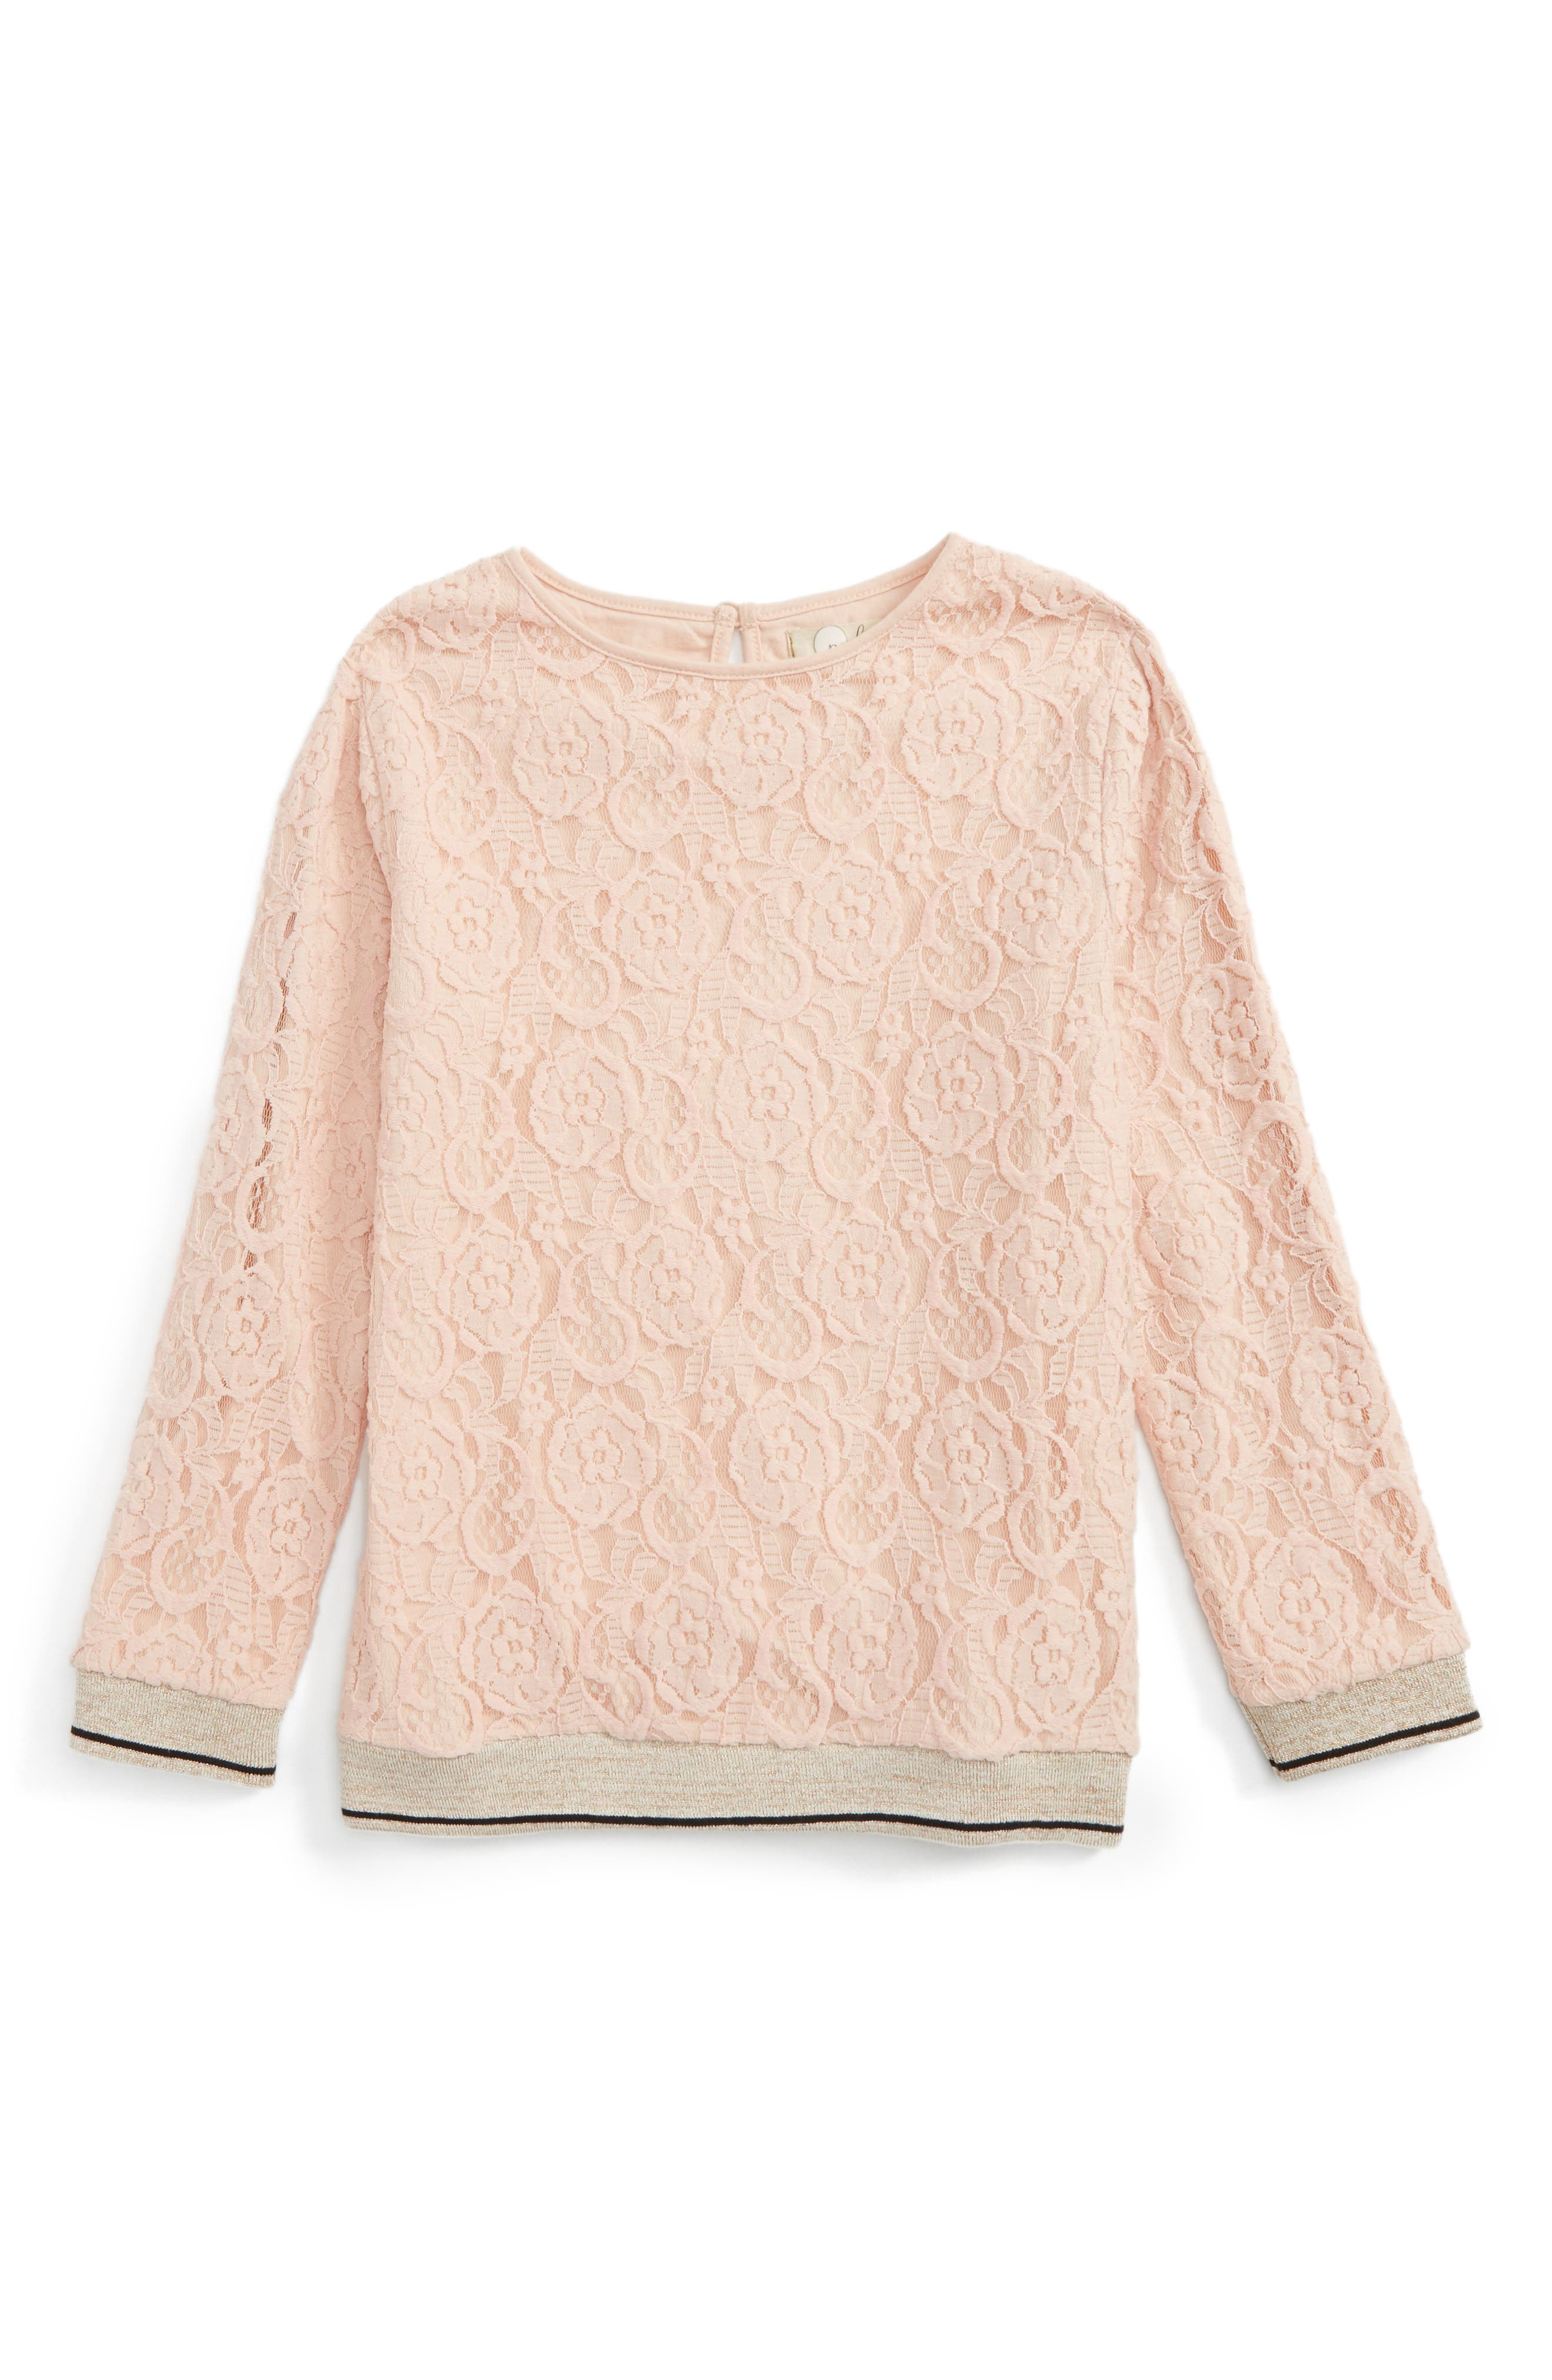 Peek Grace Lace Overlay Top (Toddler Girls, Little Girls & Big Girls)